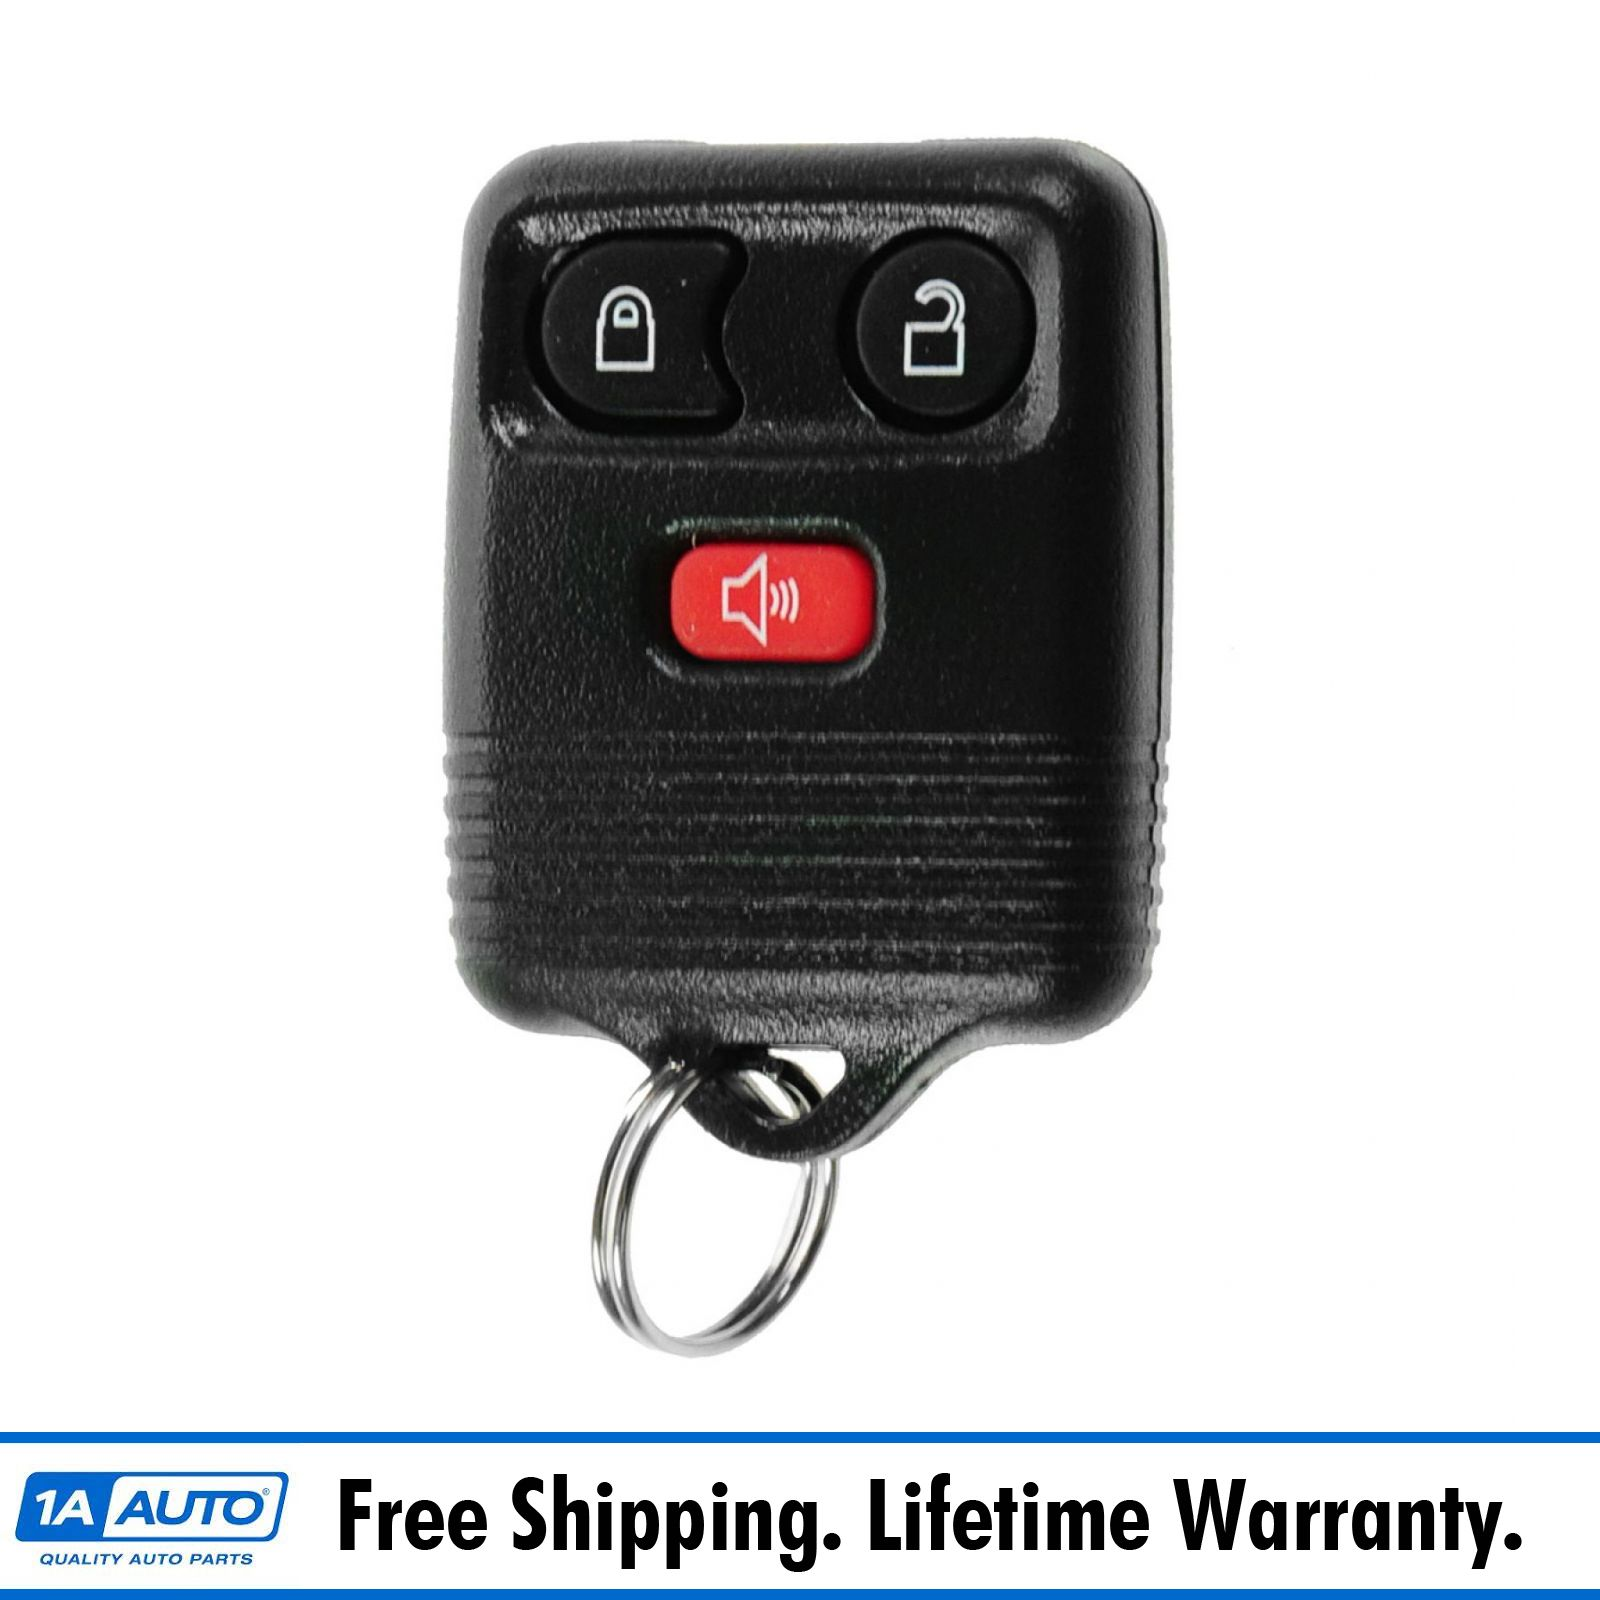 2013 ford escape remote start instructions